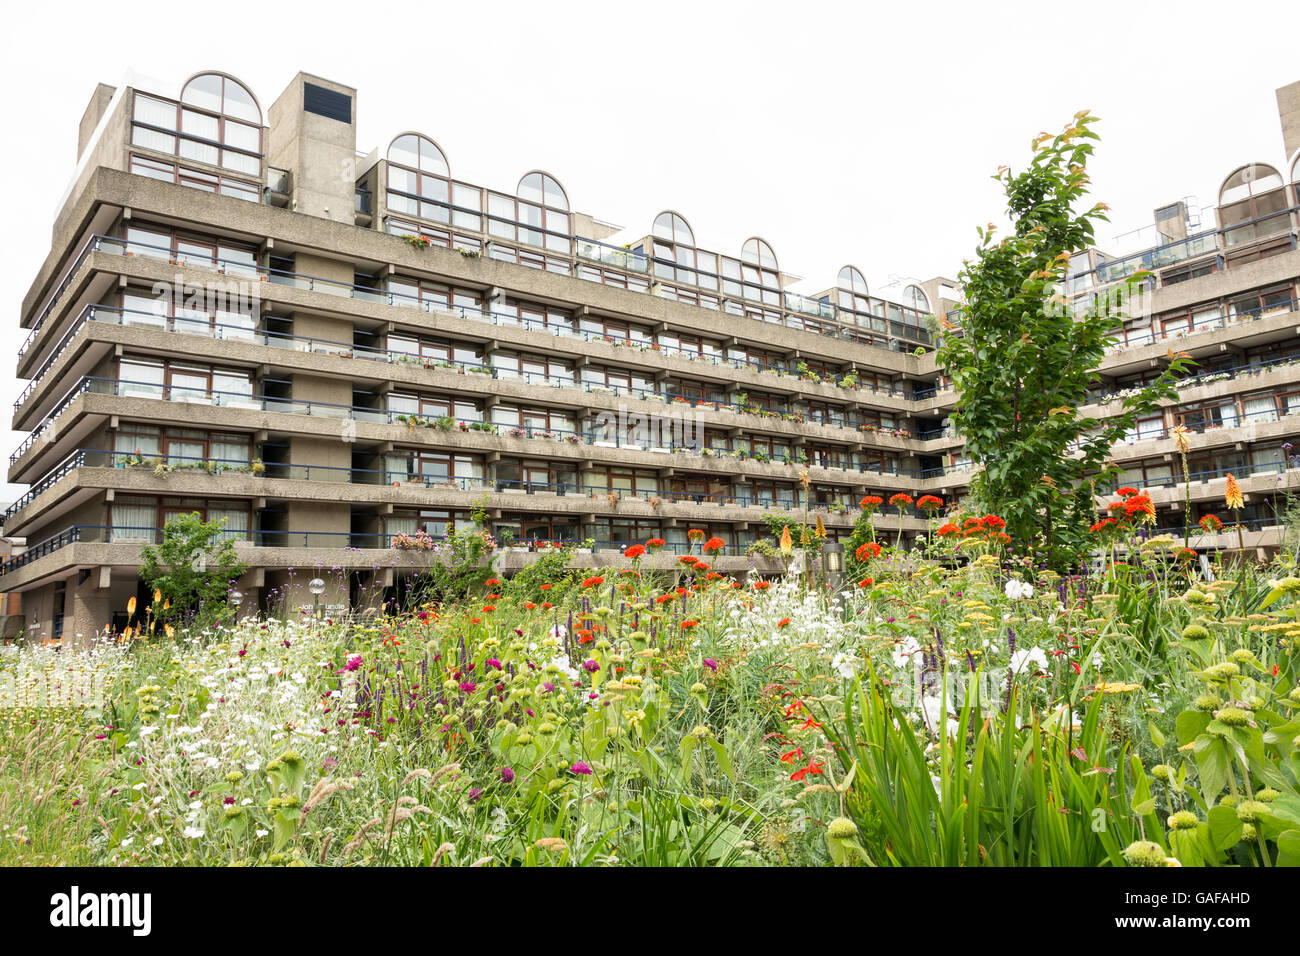 Poppies and wildflowers surround the Barbican Exhibition Halls in the Barbican complex, City of London, UK Stock Photo